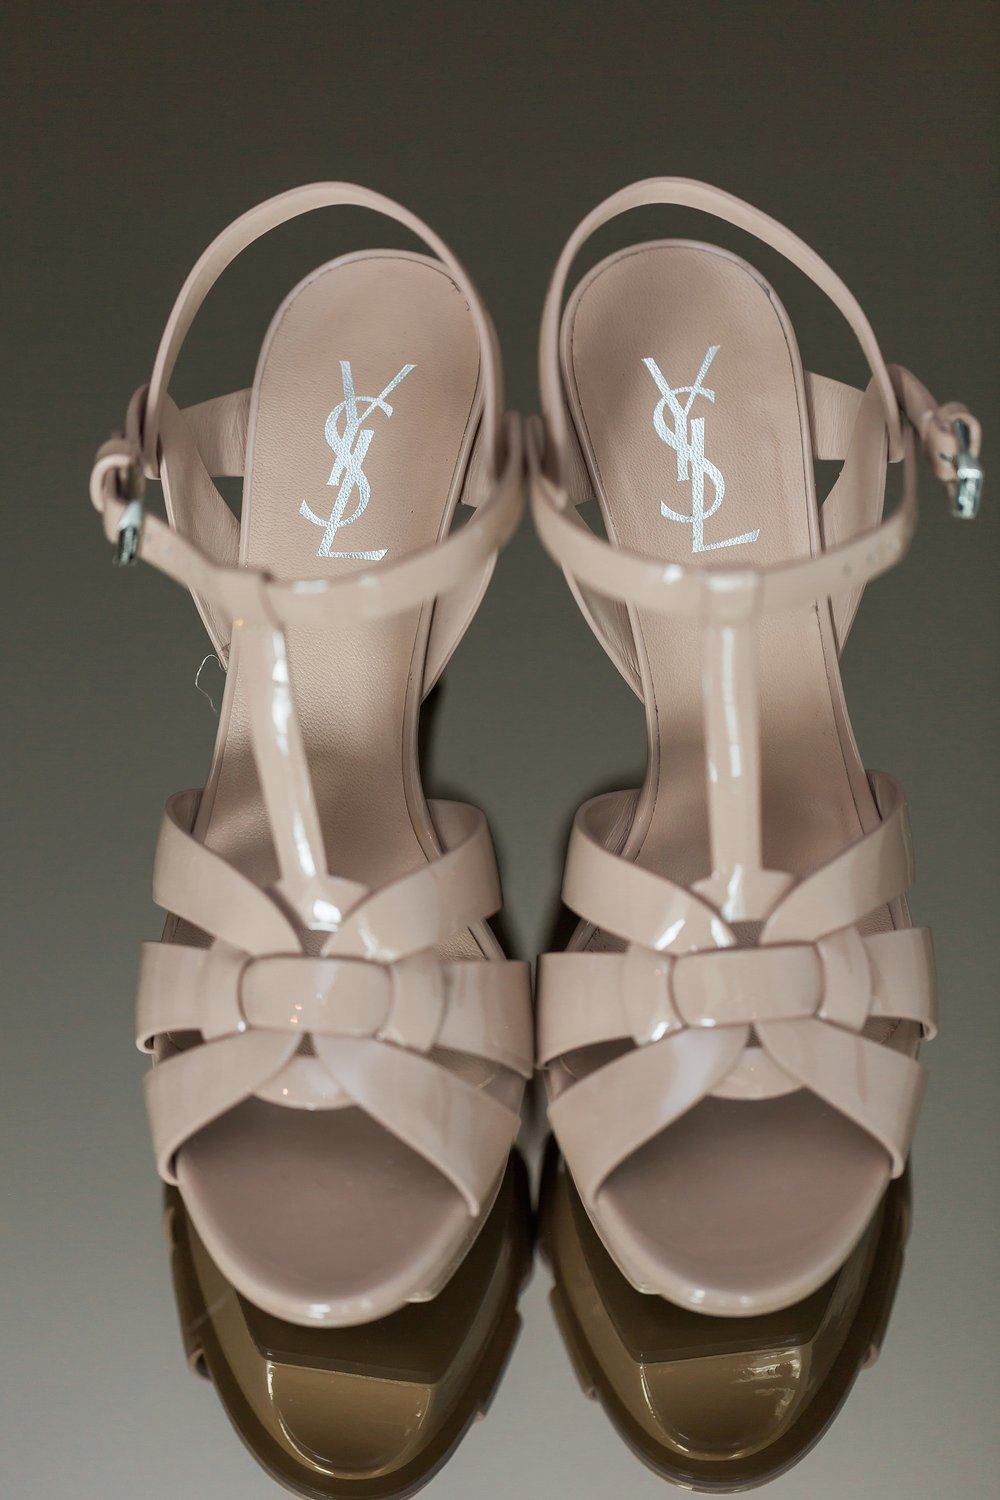 YSL-wedding-shoes.jpg